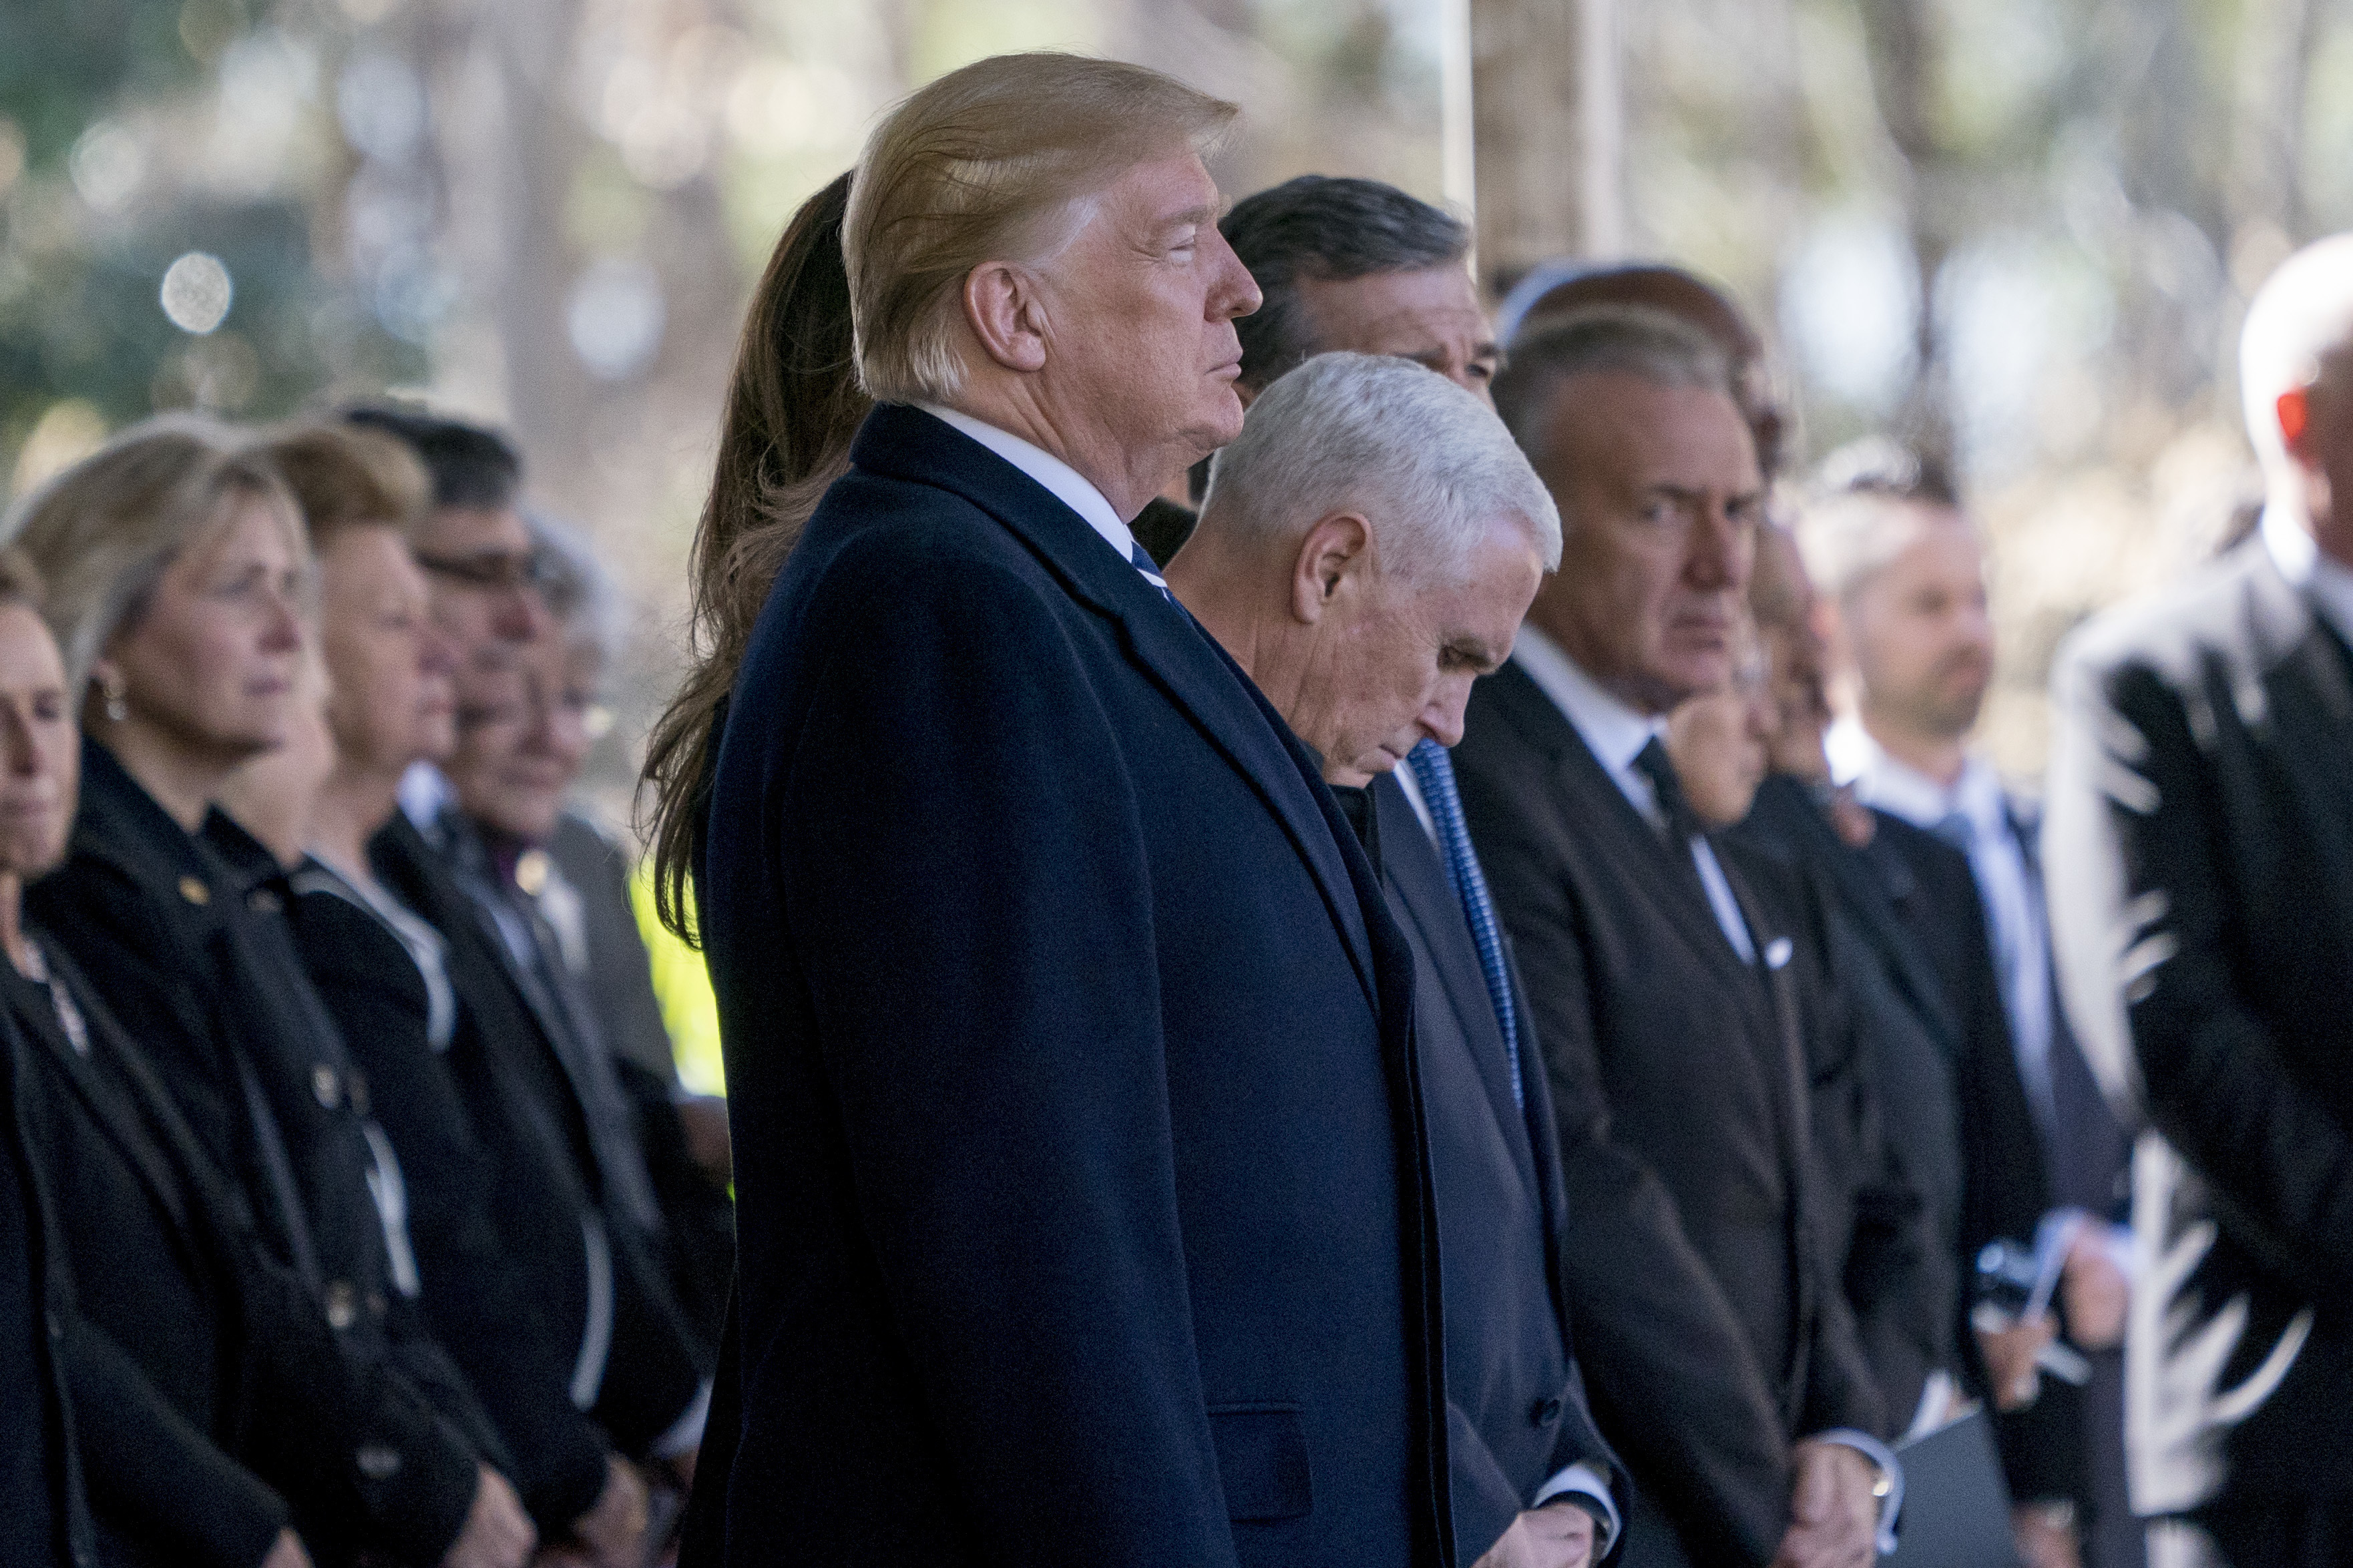 President Donald Trump and Vice President Mike Pence, center right, arrive at the funeral of Reverend Billy Graham in Charlotte, N.C., March 2, 2018.